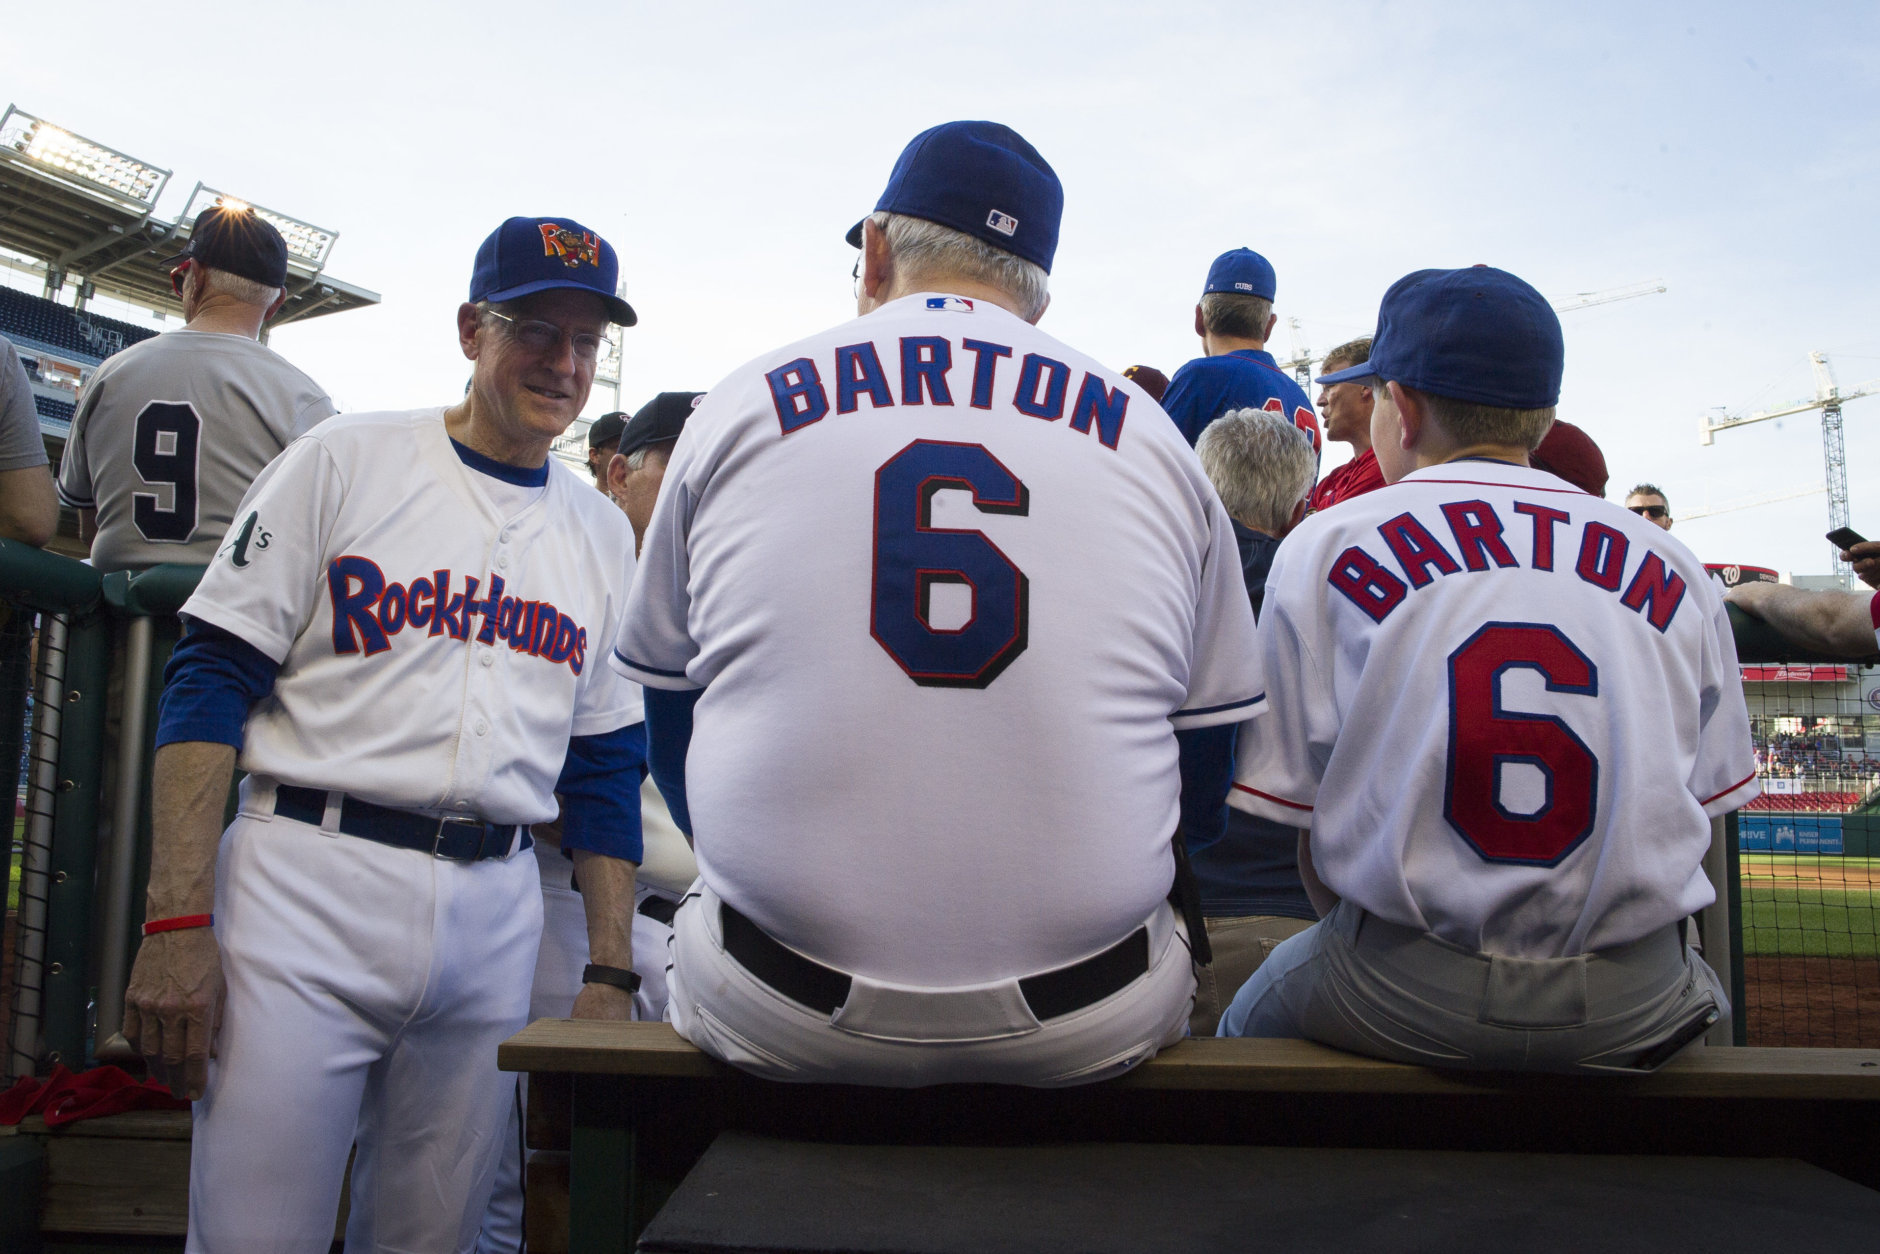 Rep. Mike Conaway, R-Texas, left talks with Rep. Joe Barton, R-Texas, and his son Jack, 12, while they sit in the Republican team dugout during the 57th Congressional Baseball Game at National's Park in Washington, Thursday, June 14, 2018. On June 14, 2017, Congressional members were victims of a shooting at the baseball field they were practicing on in Alexandria, Va. (AP Photo/Cliff Owen)